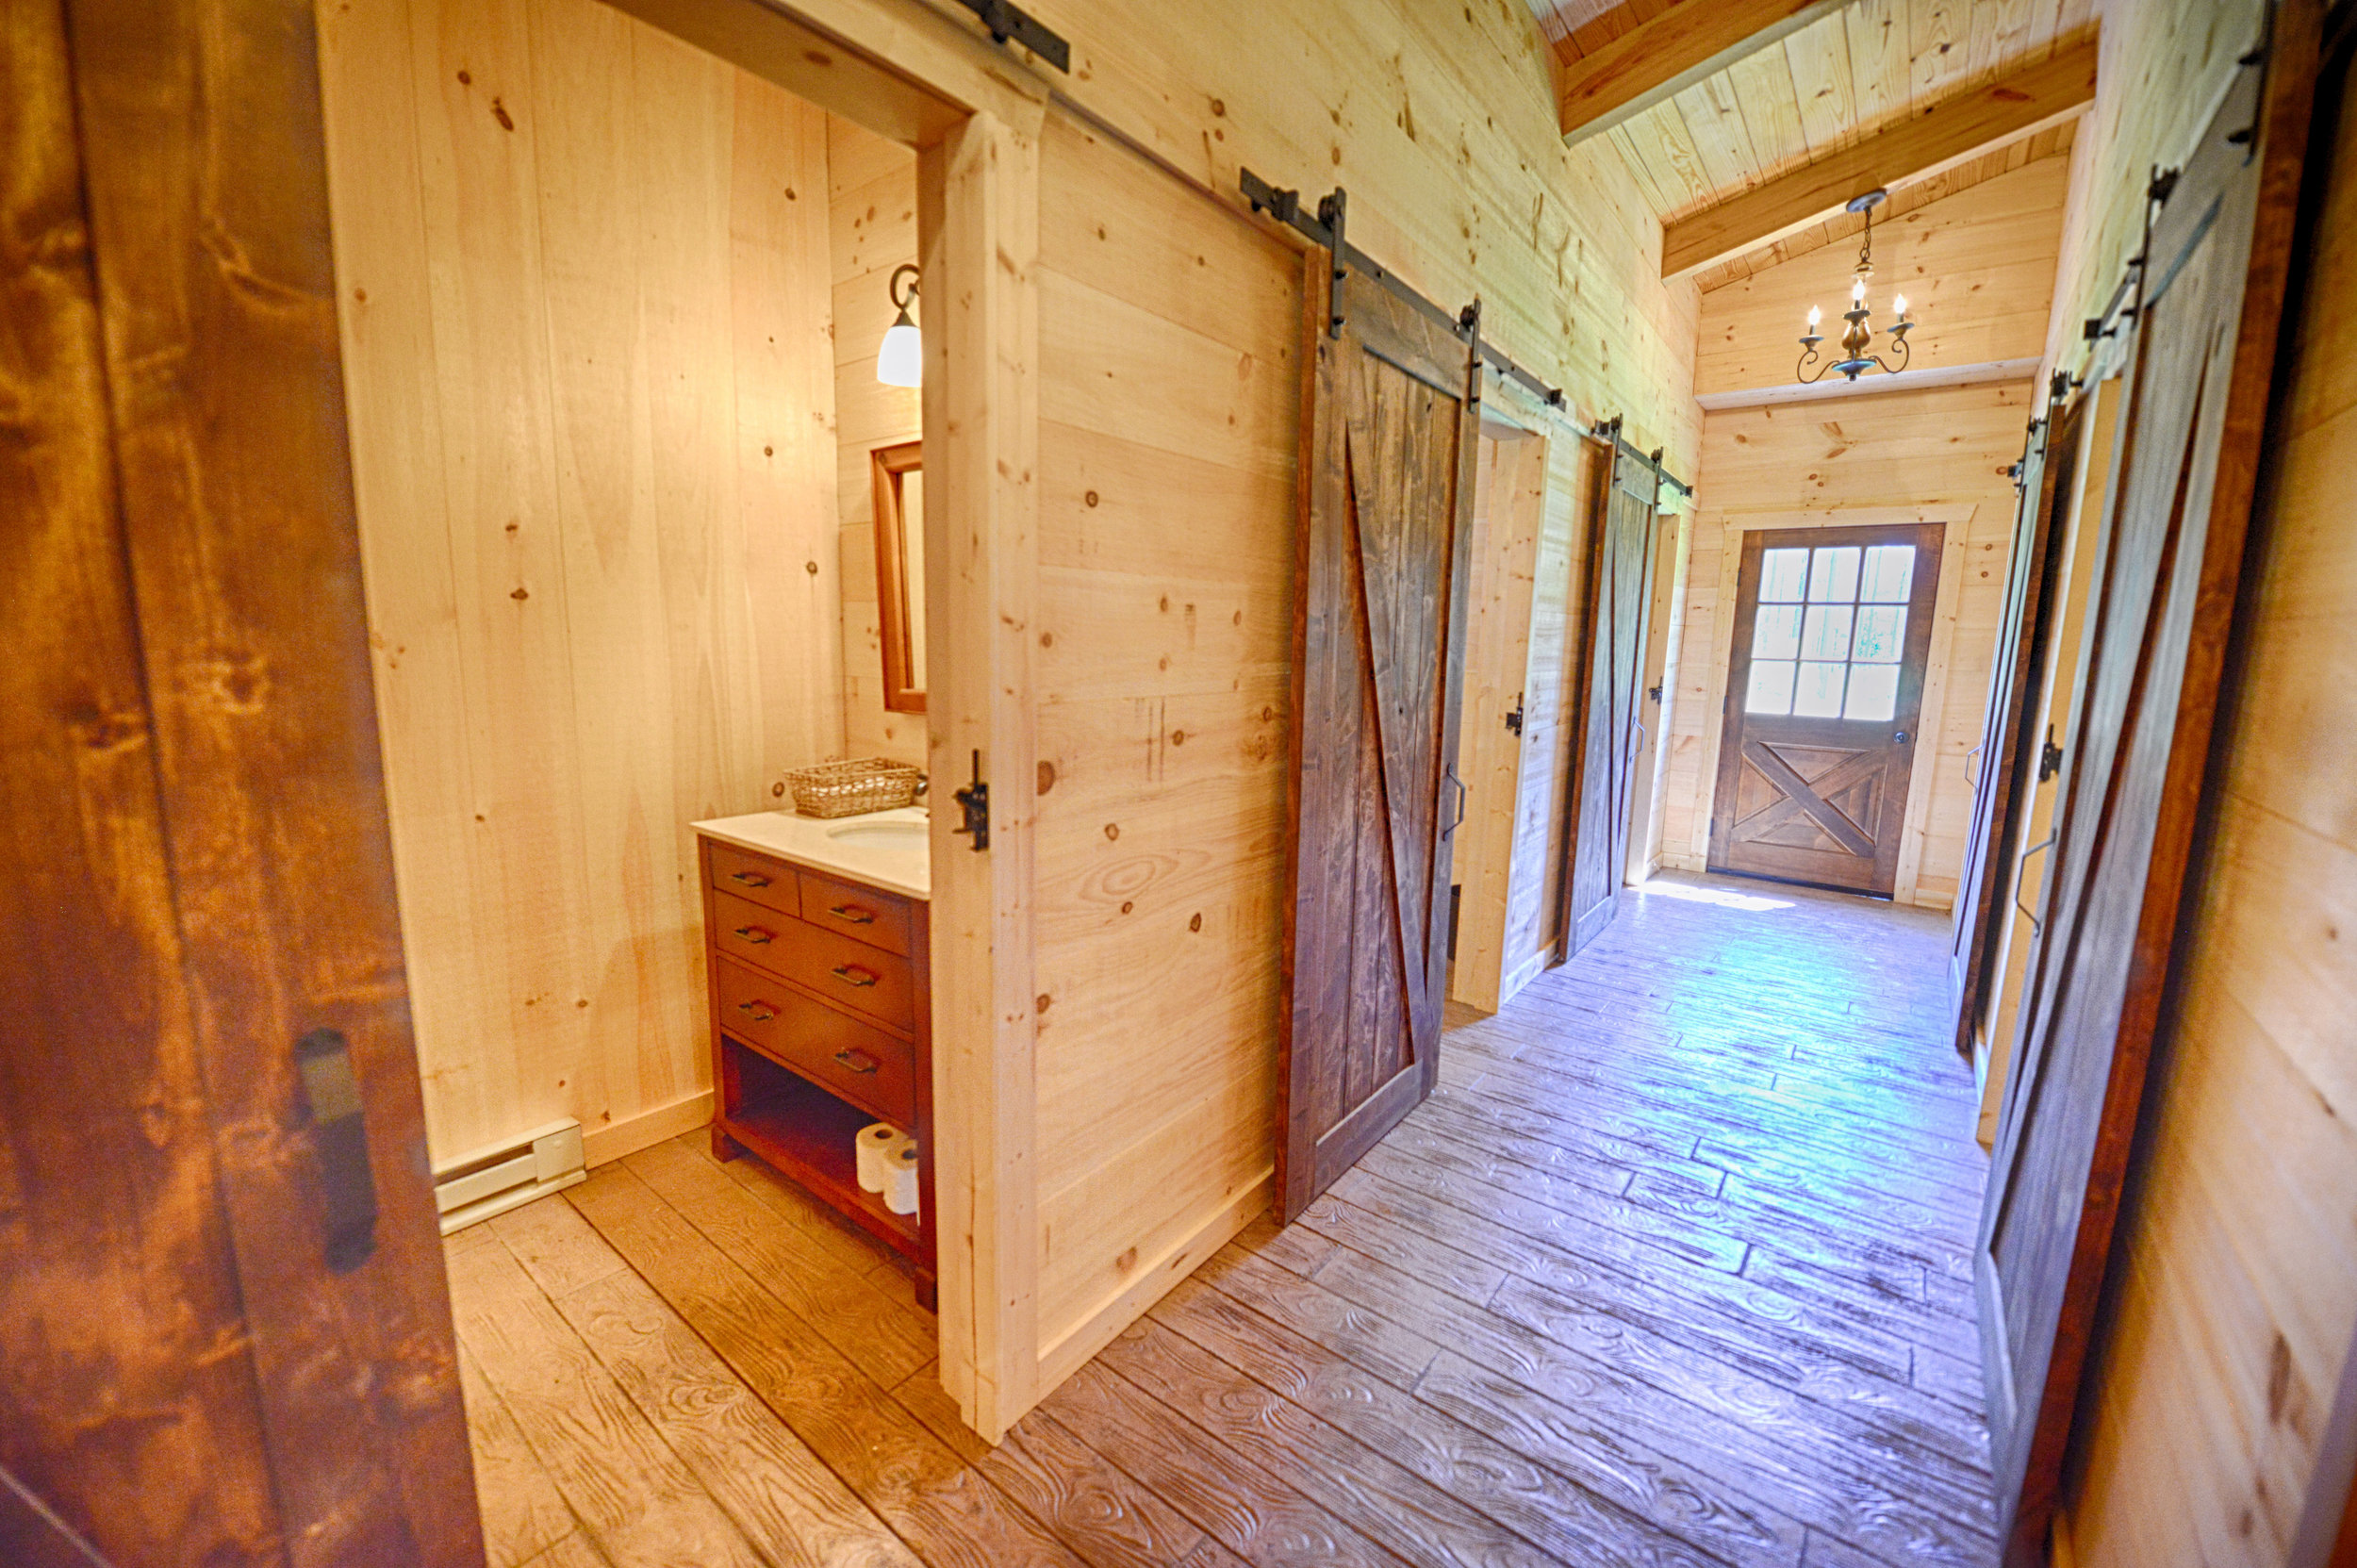 7 private restrooms with sliding barn doors